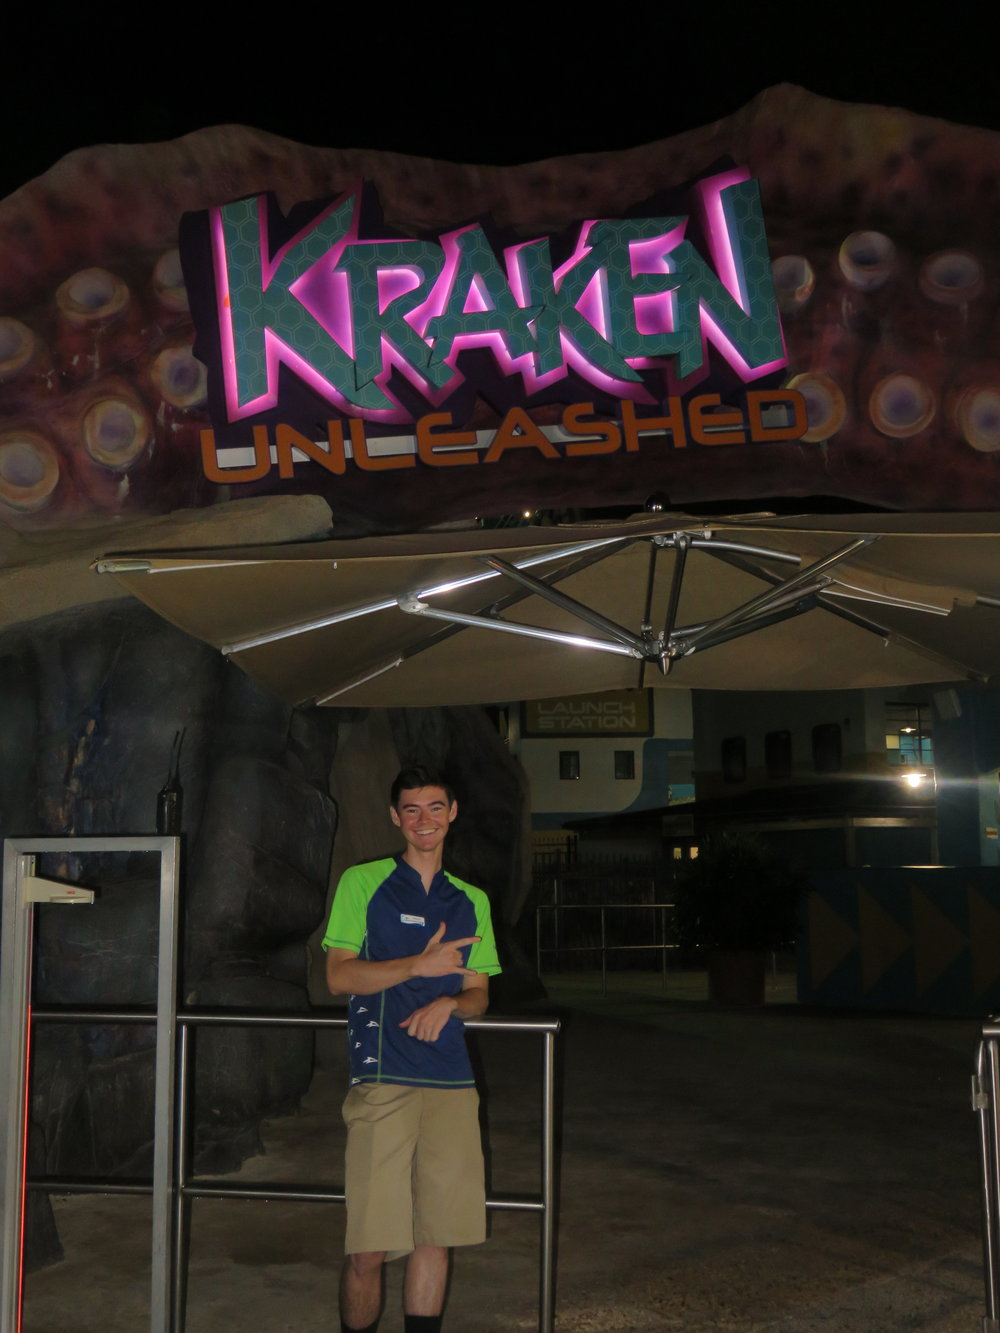 0 - SW - guy under Kraken unleased sign.JPG